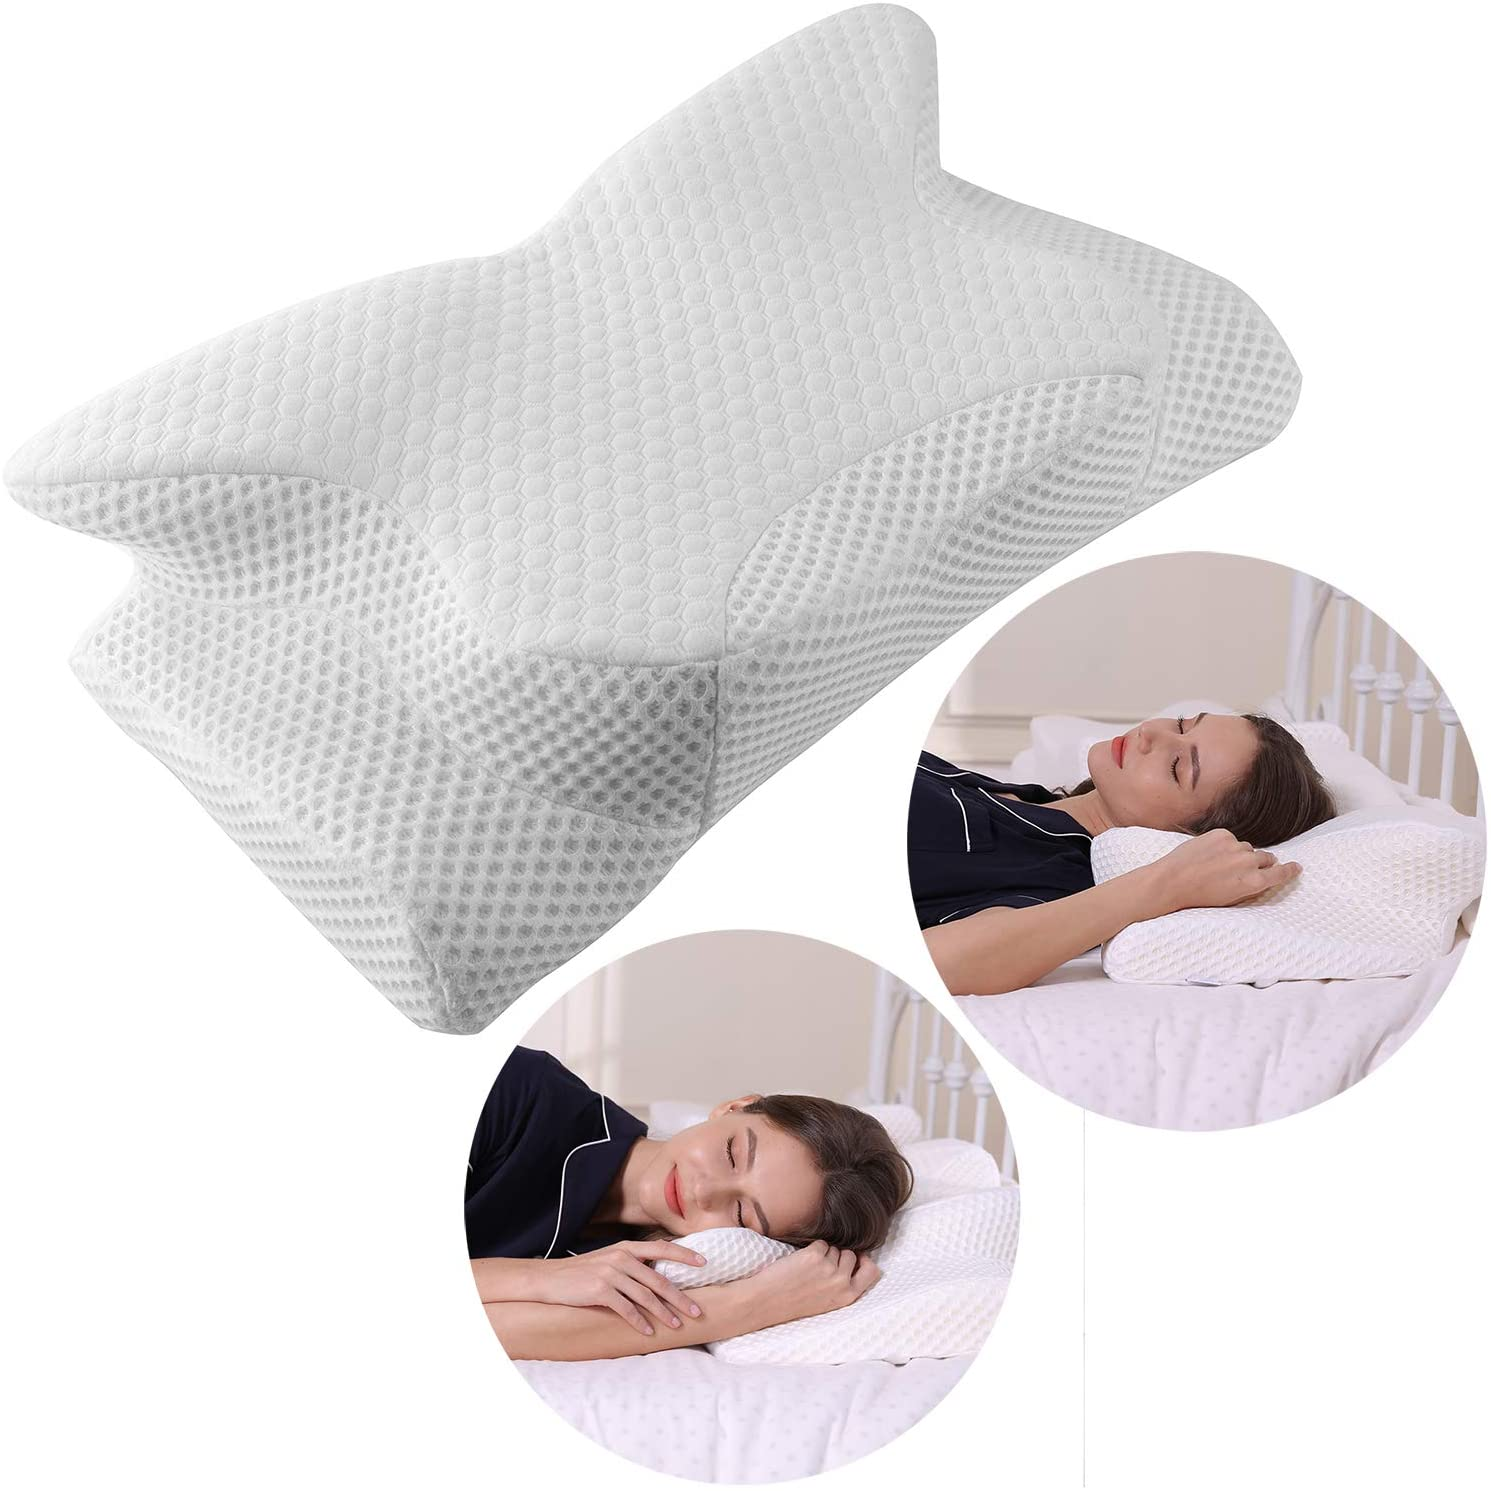 Are you suffering from a stiff neck or cervical spine problems? This article provides all the information you need on cervical spondylosis and the correct spondylosis pillow for neck pain.